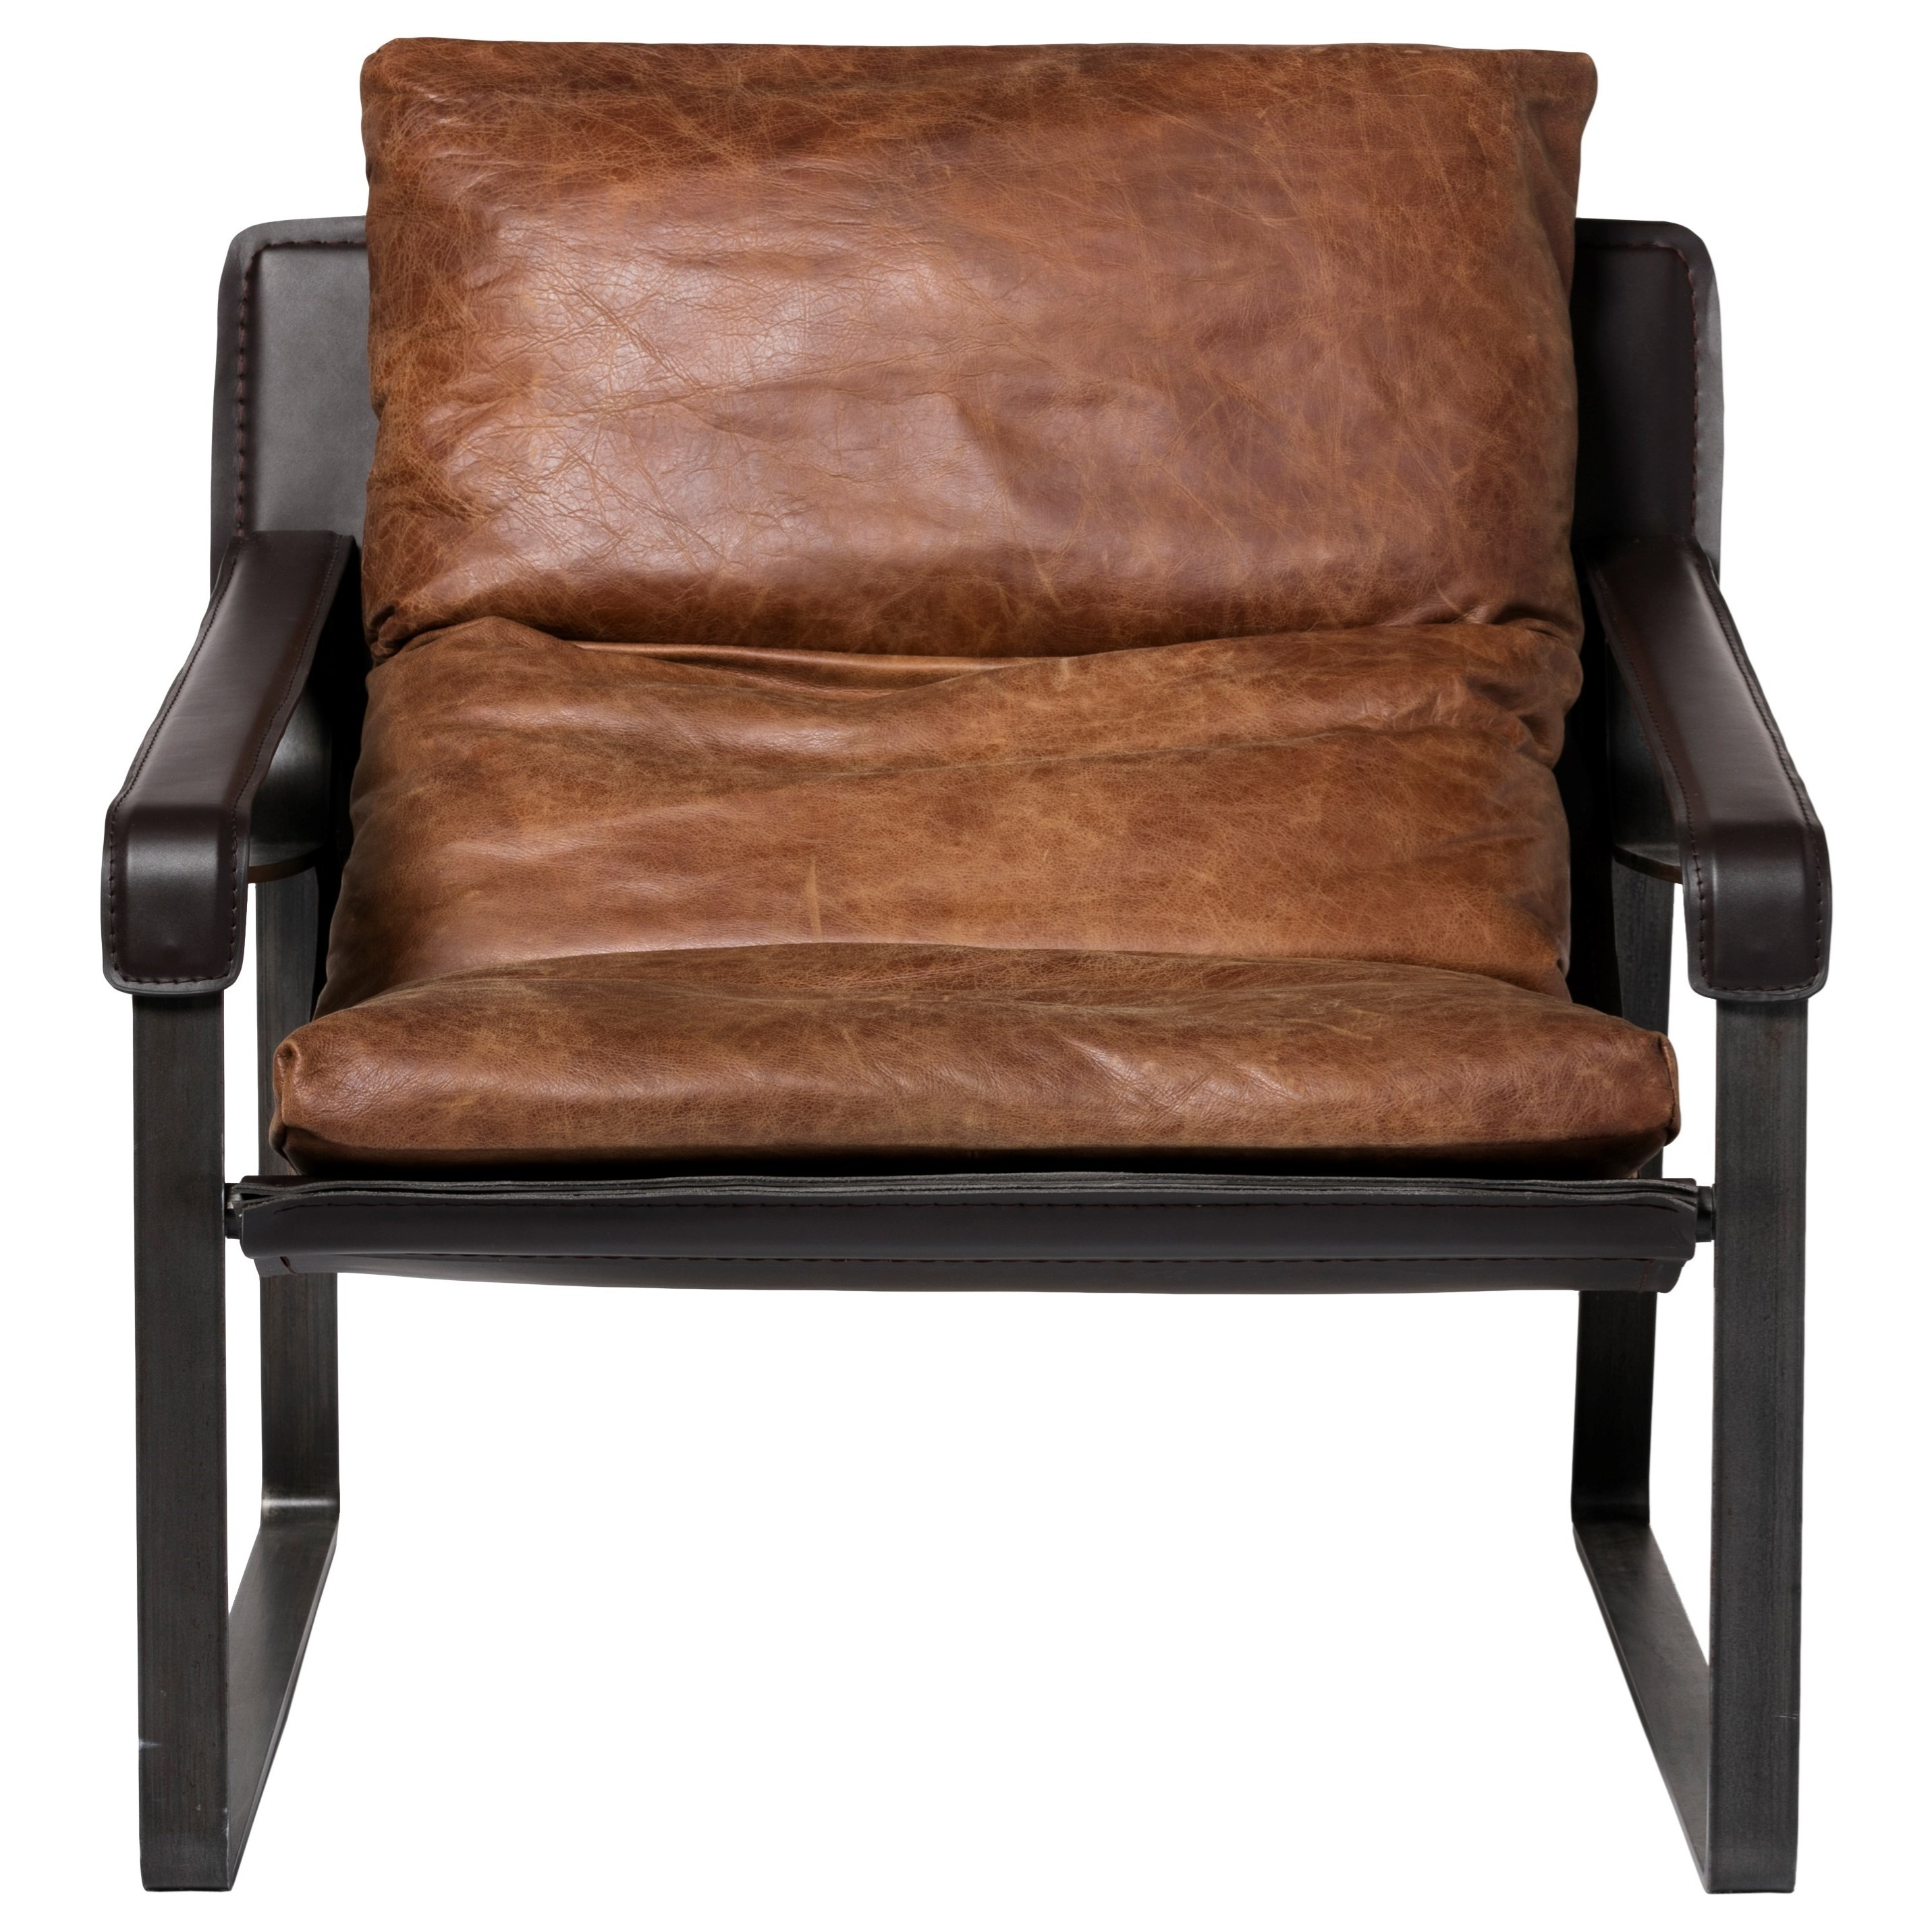 Wood Club Chair Connor Club Chair With Exposed Metal Frame By Moe S Home Collection At Stoney Creek Furniture